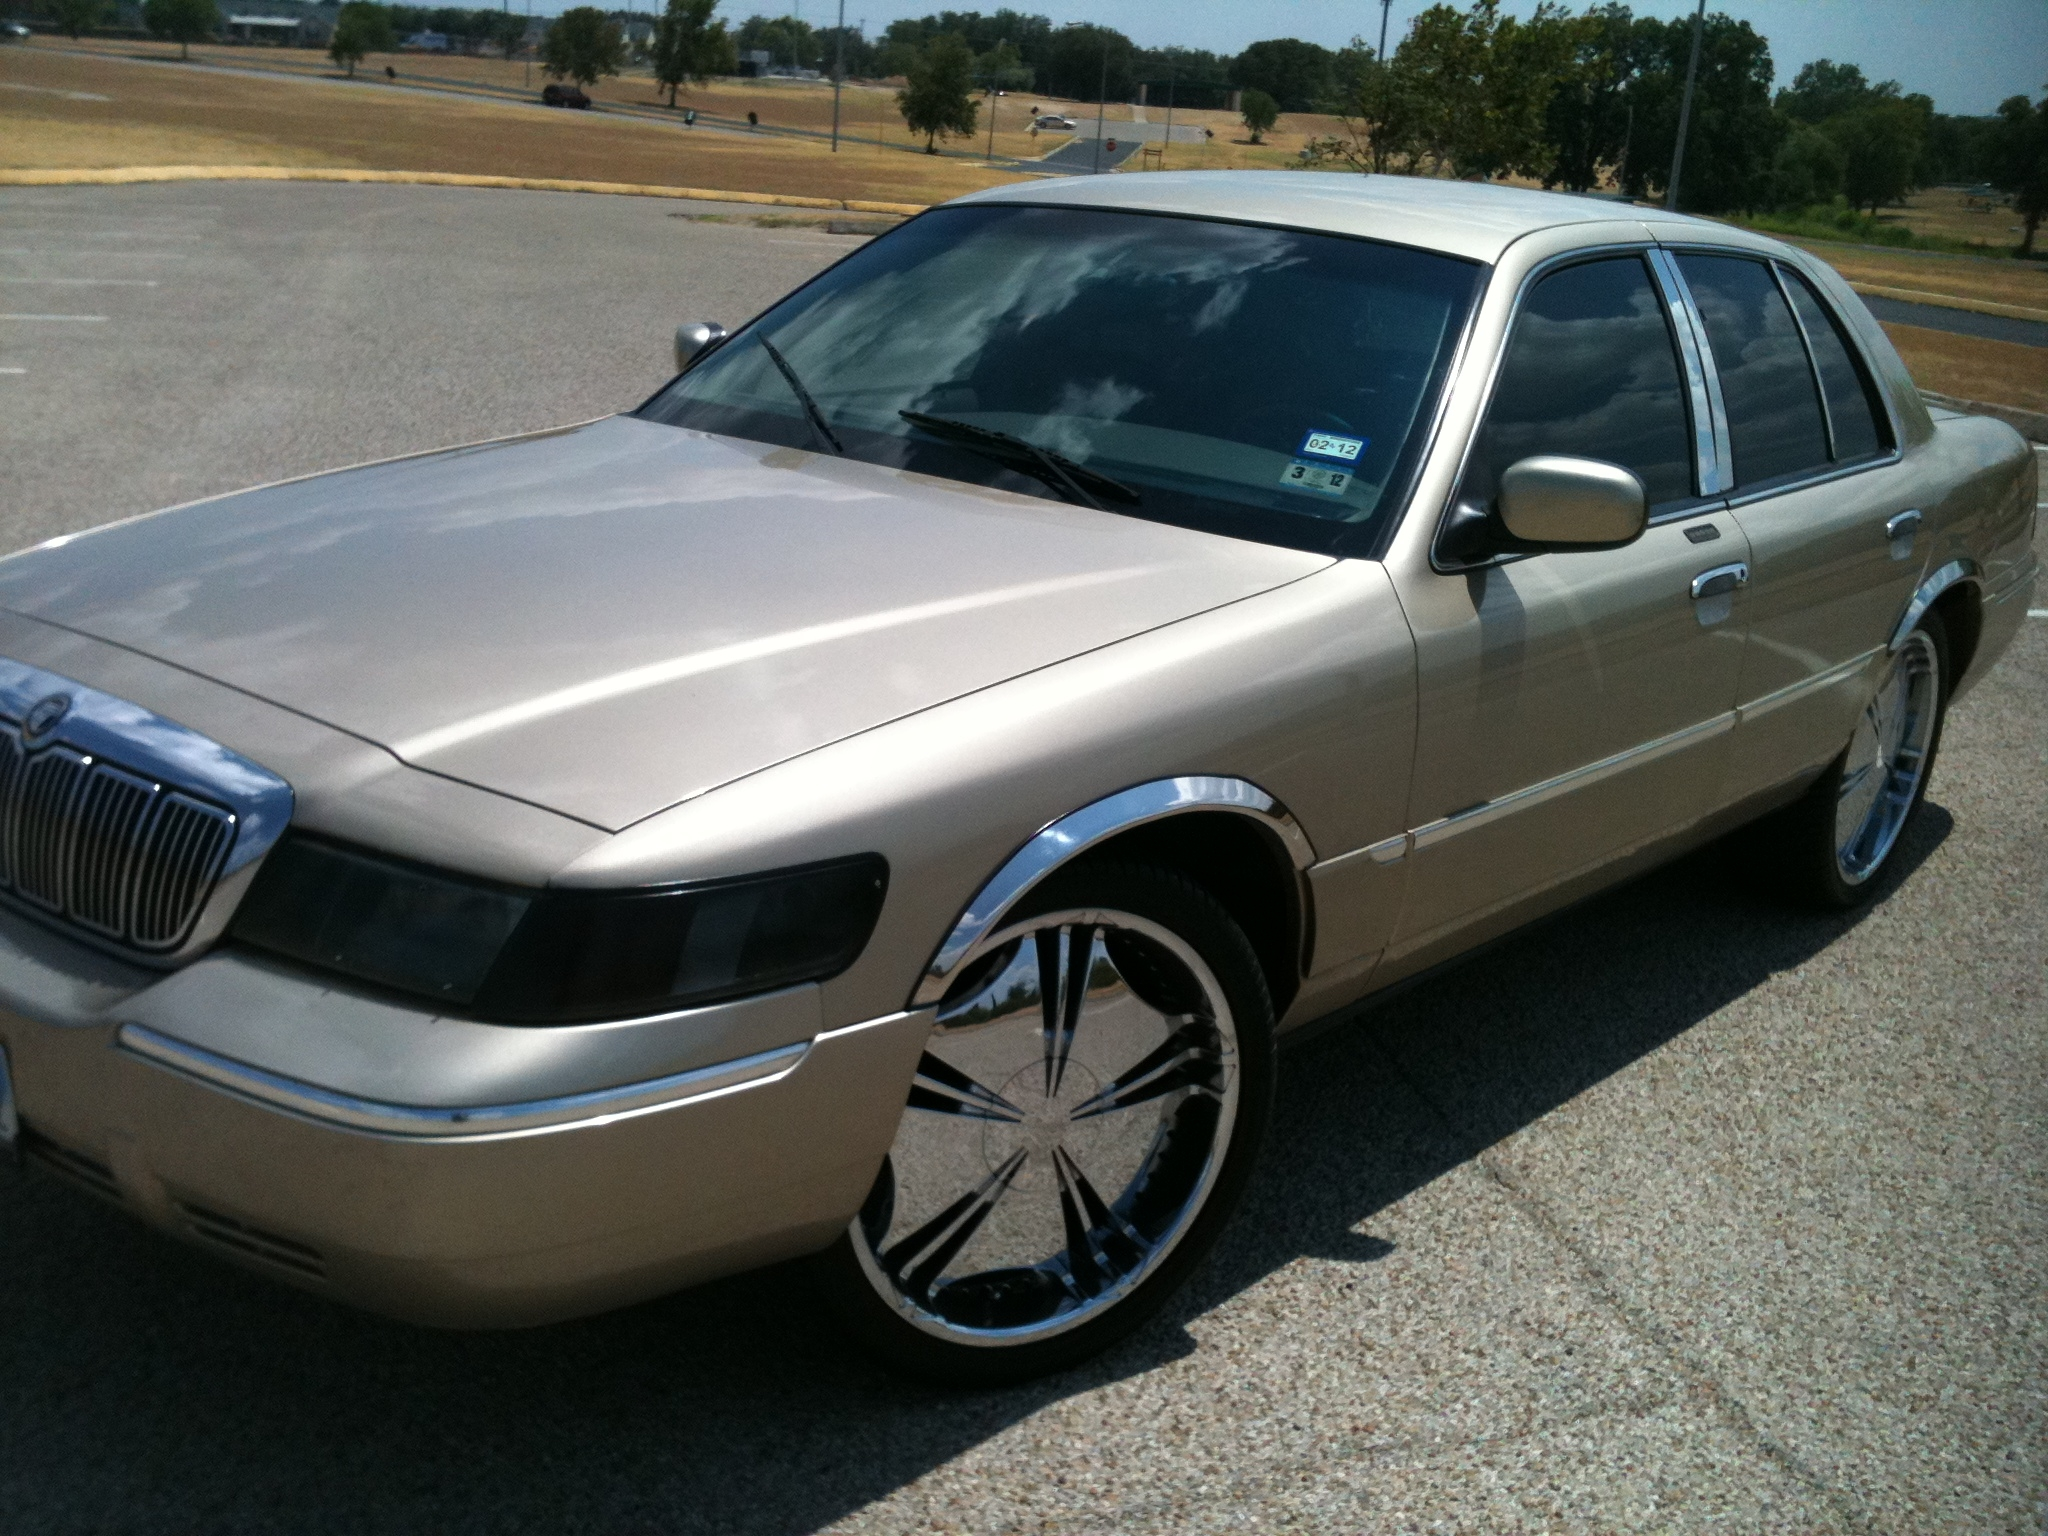 Toyota Of Killeen >> MercGame254 1999 Mercury Grand Marquis Specs, Photos, Modification Info at CarDomain